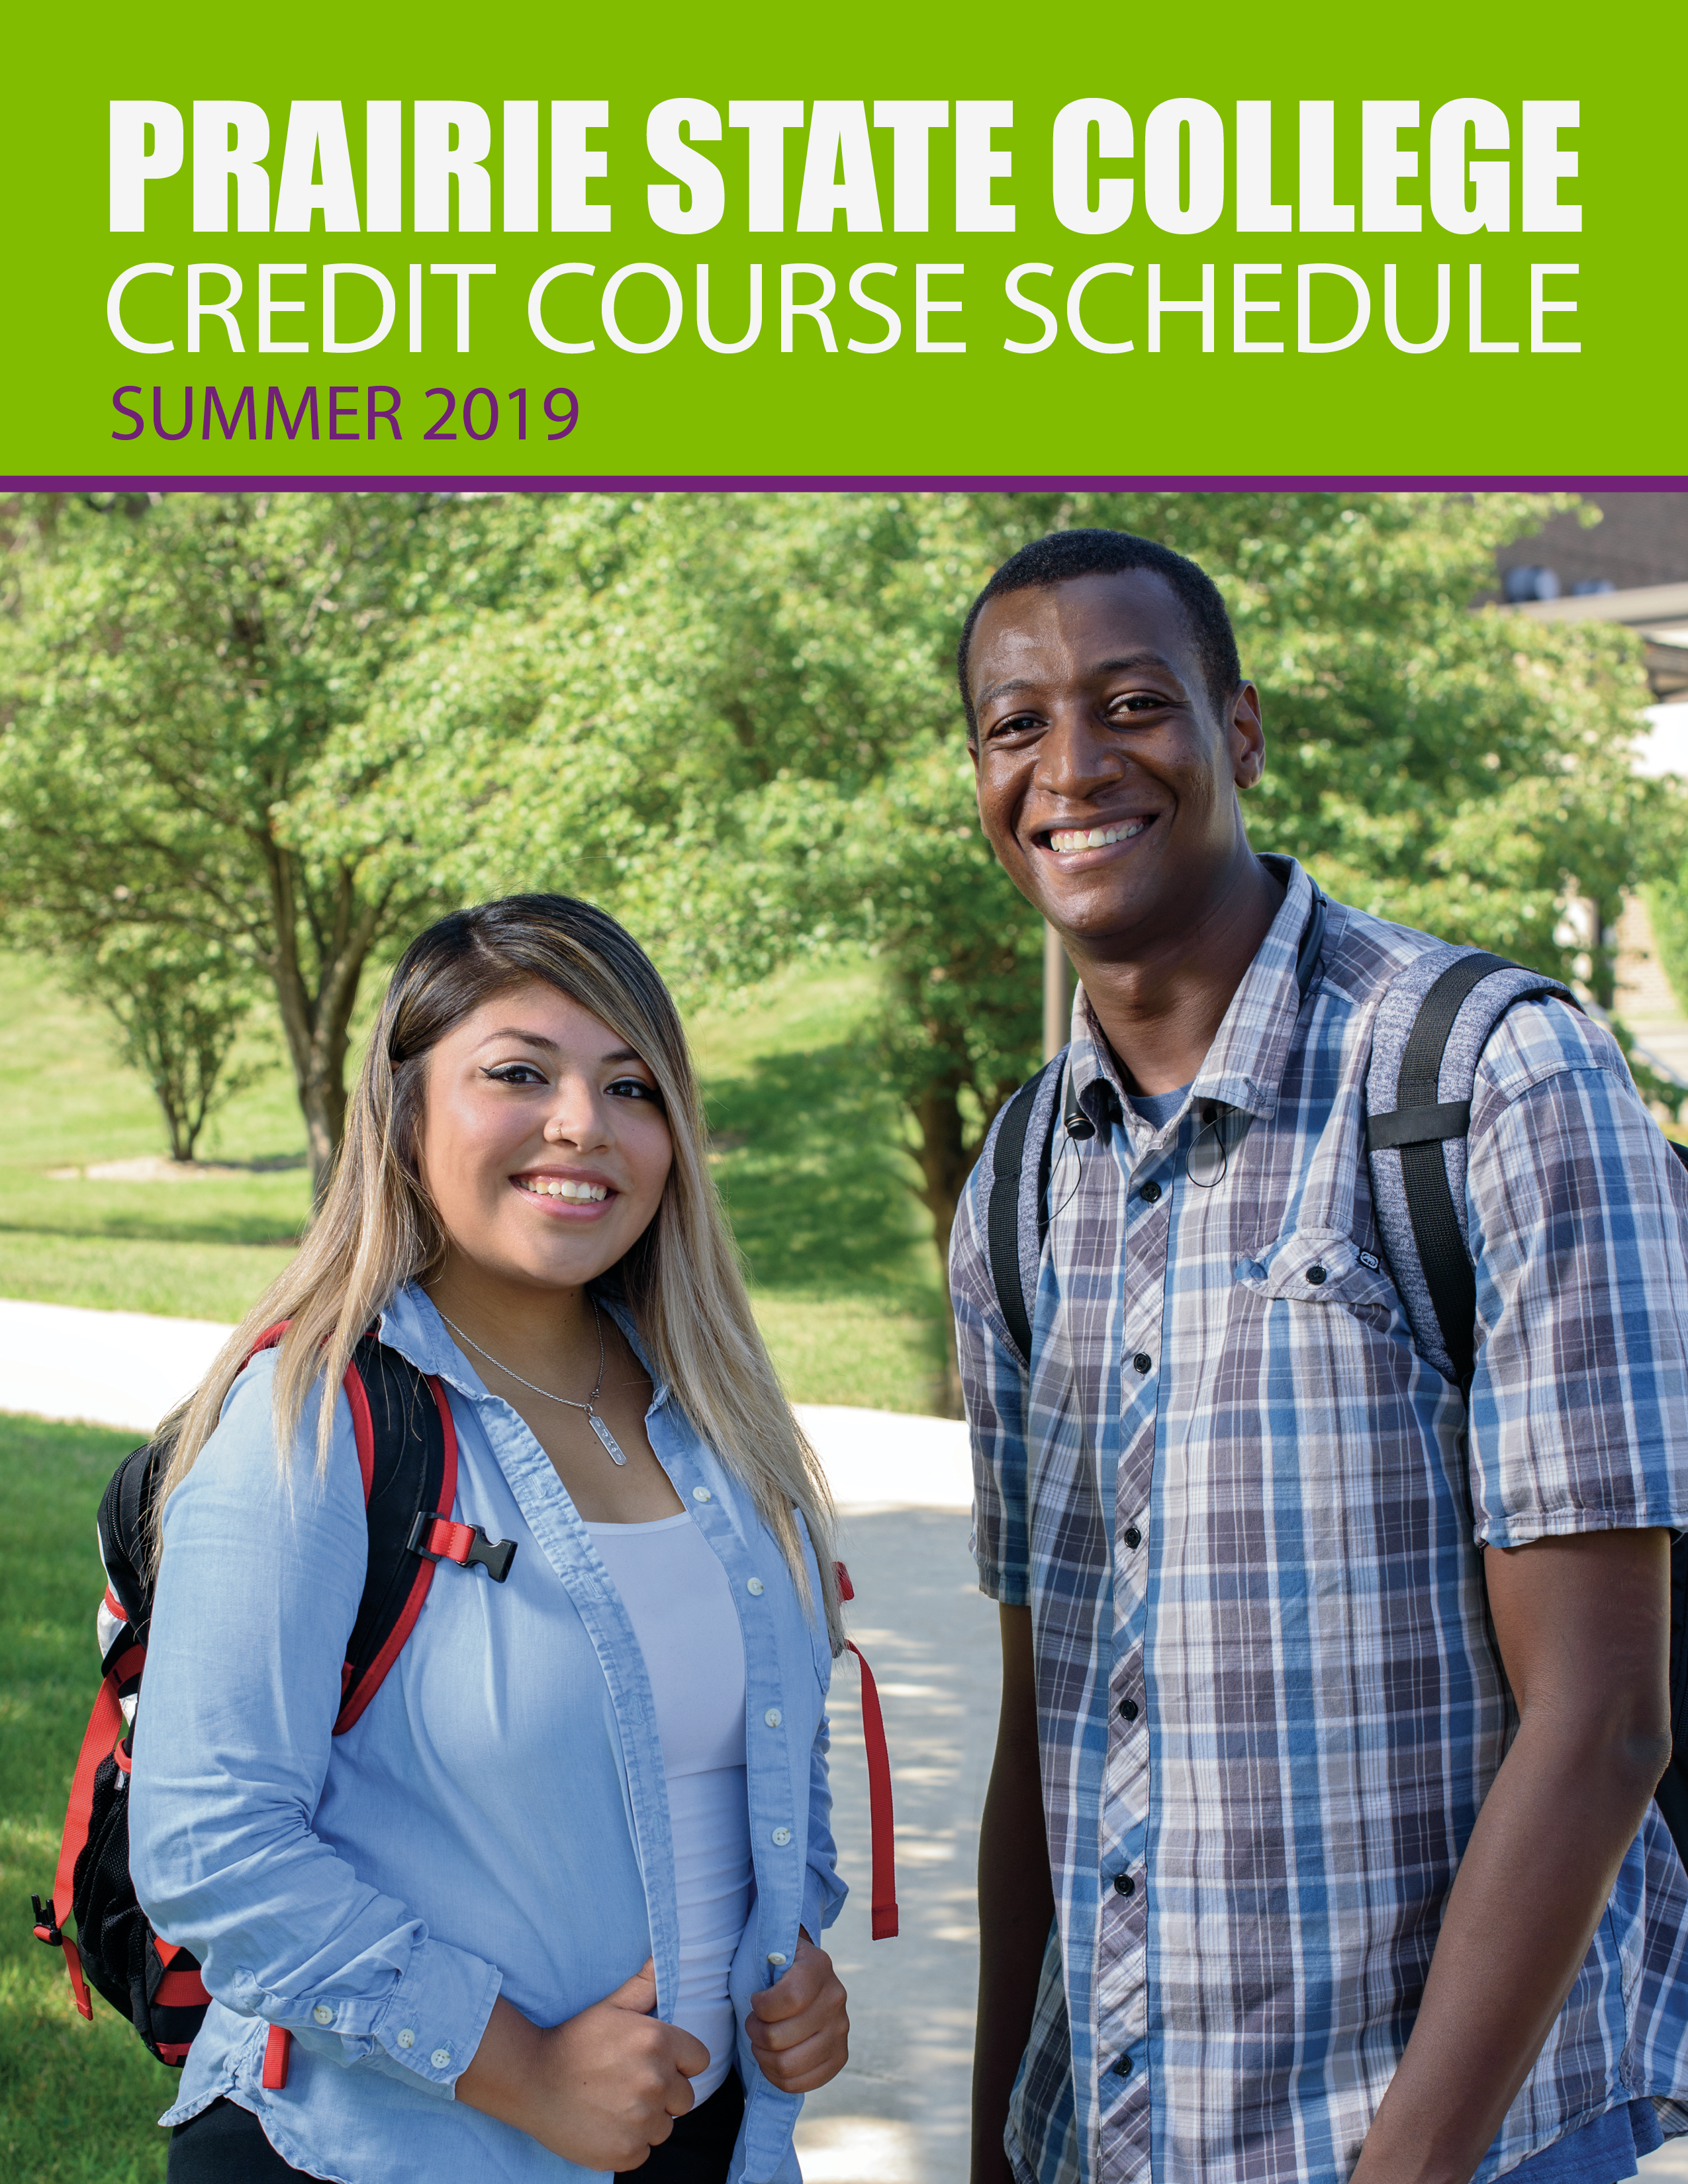 Summer Credit Schedule